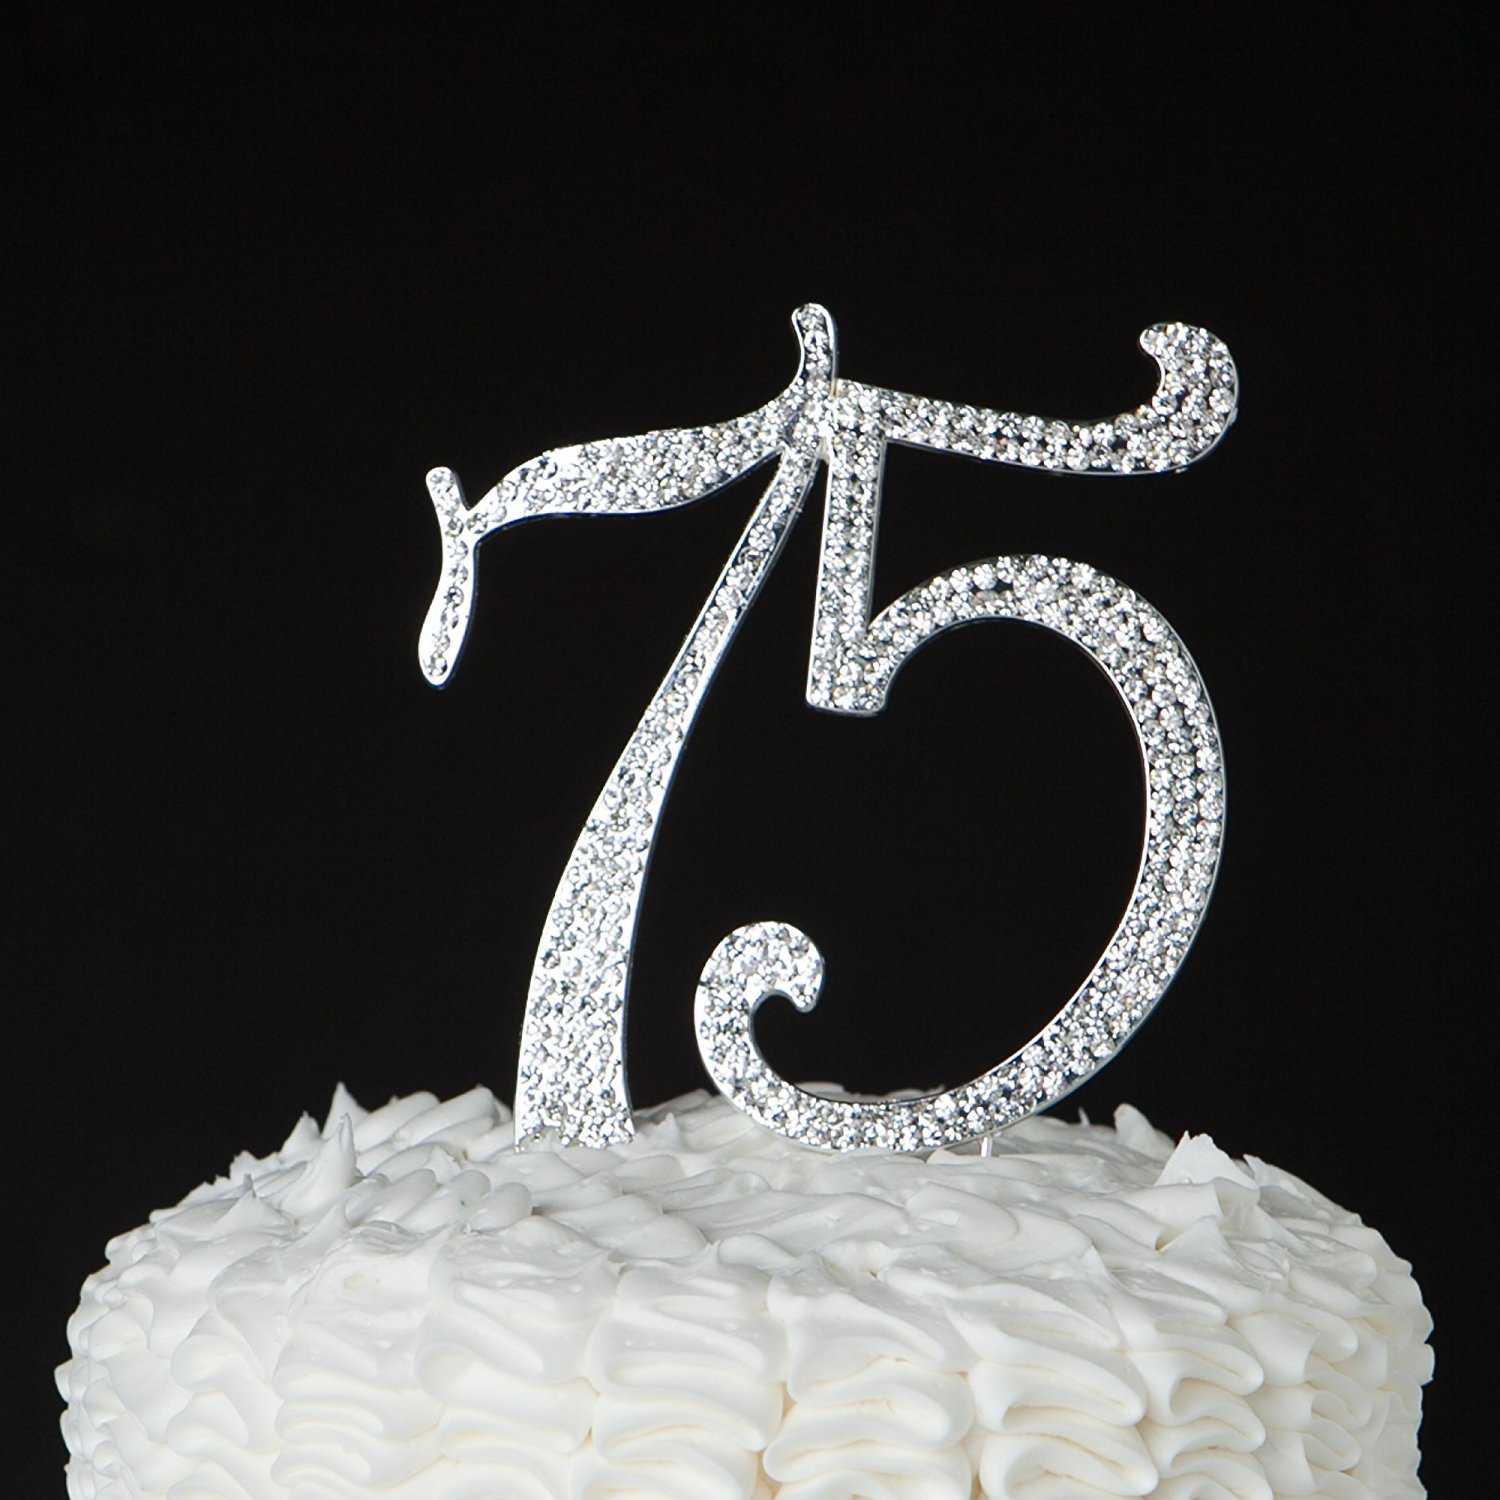 75Th Birthday Cake 75 Topper For 75th Or Anniversary Party Crystal